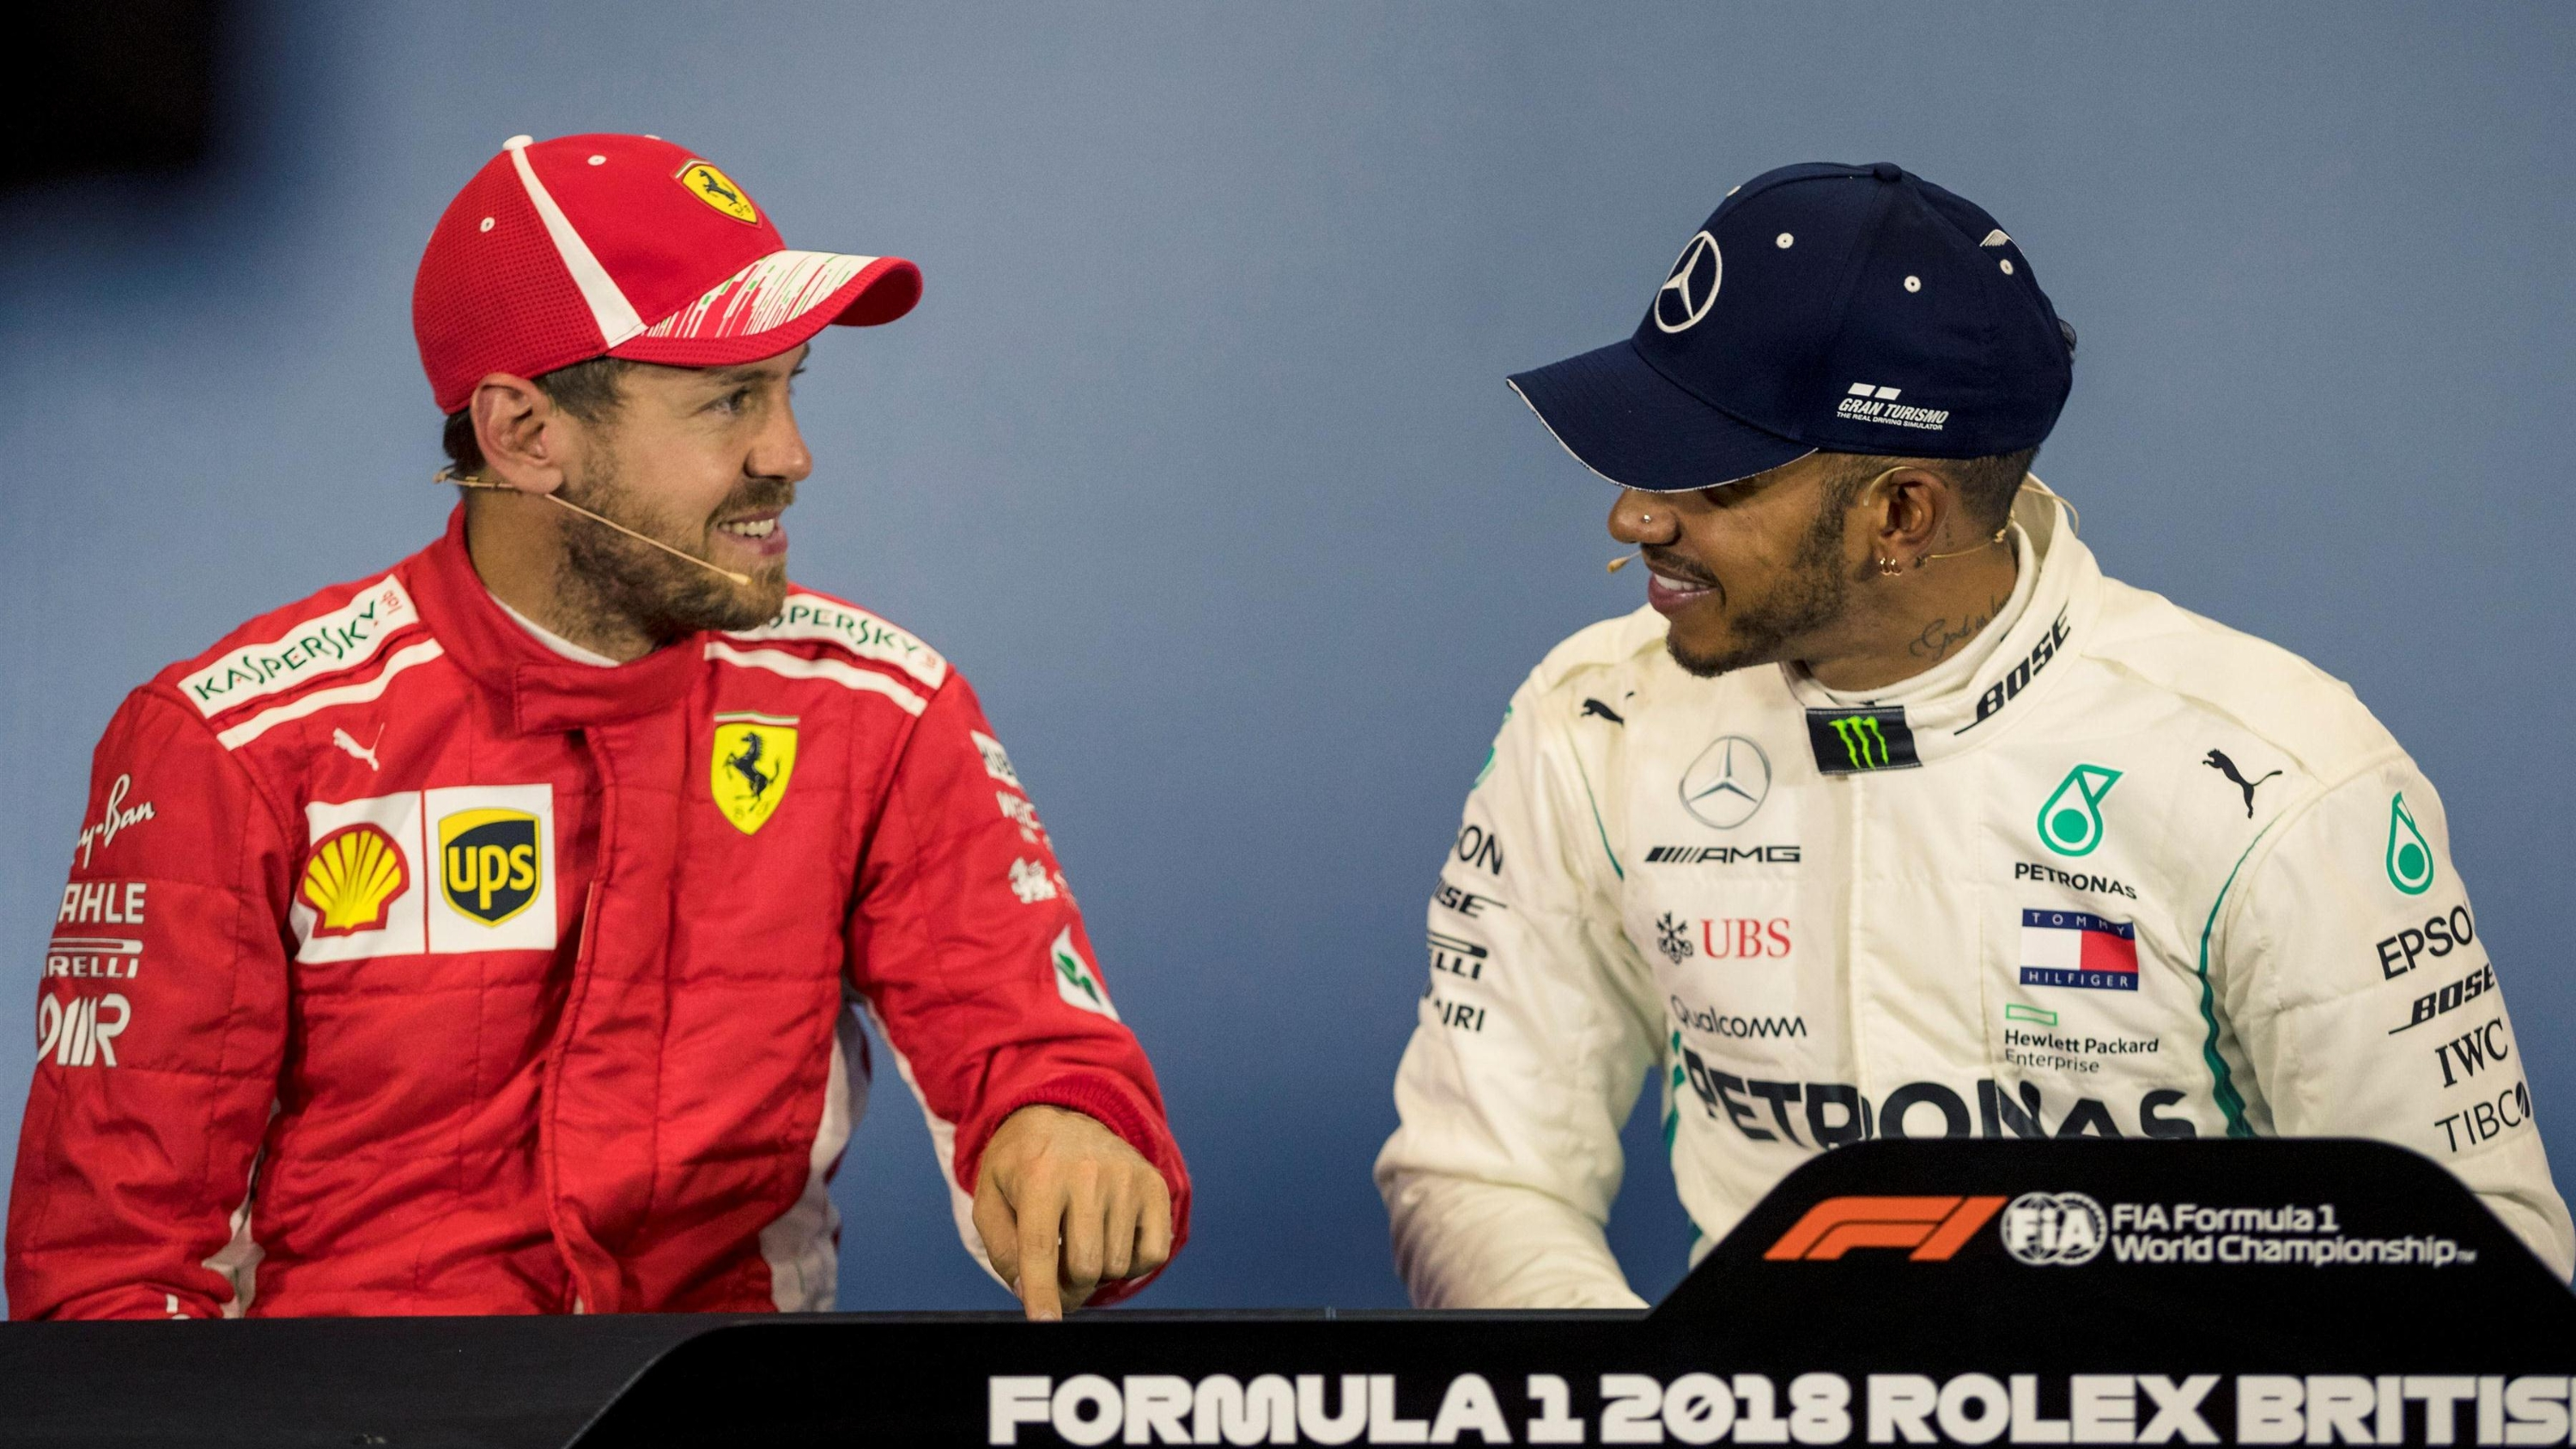 Villeneuve: Raikkonen penalty less if he hit Bottas